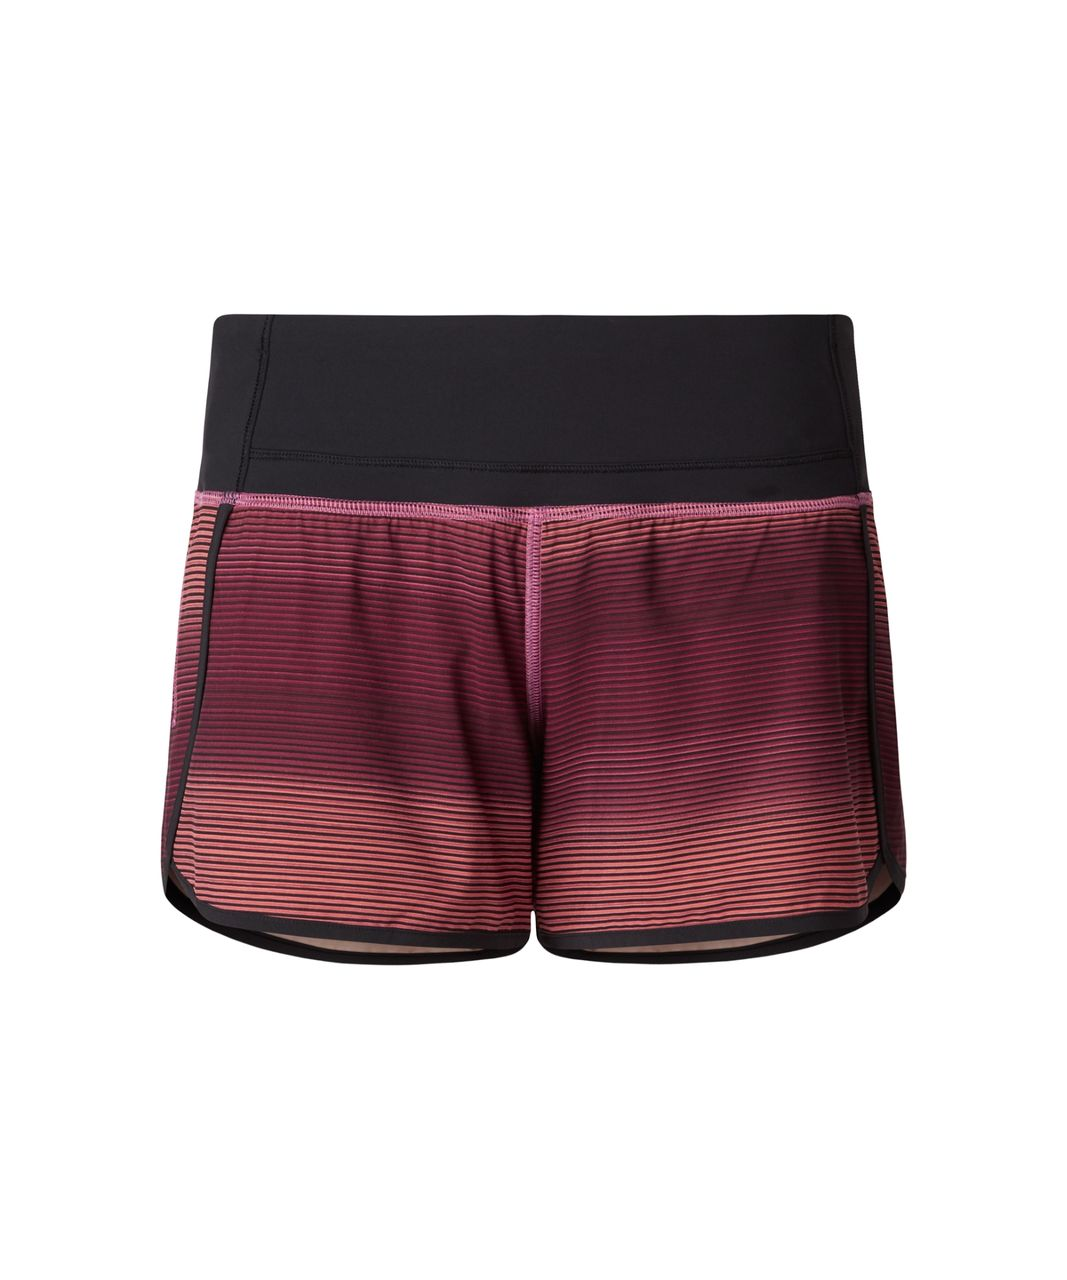 Lululemon Run Times Short - Simply Radiant Pink Paradise Black / Black